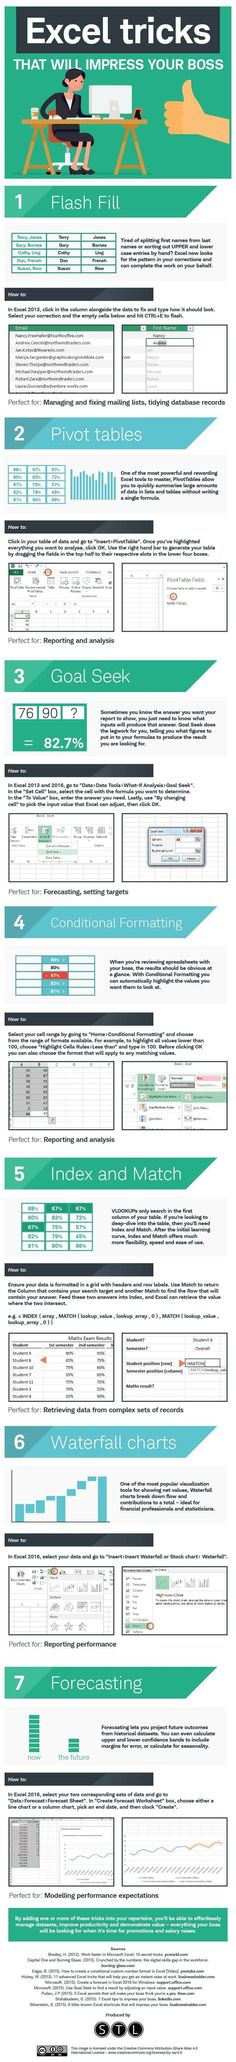 cheryl thomas (cherylthomas79) on Pinterest - sales lead tracking spreadsheet